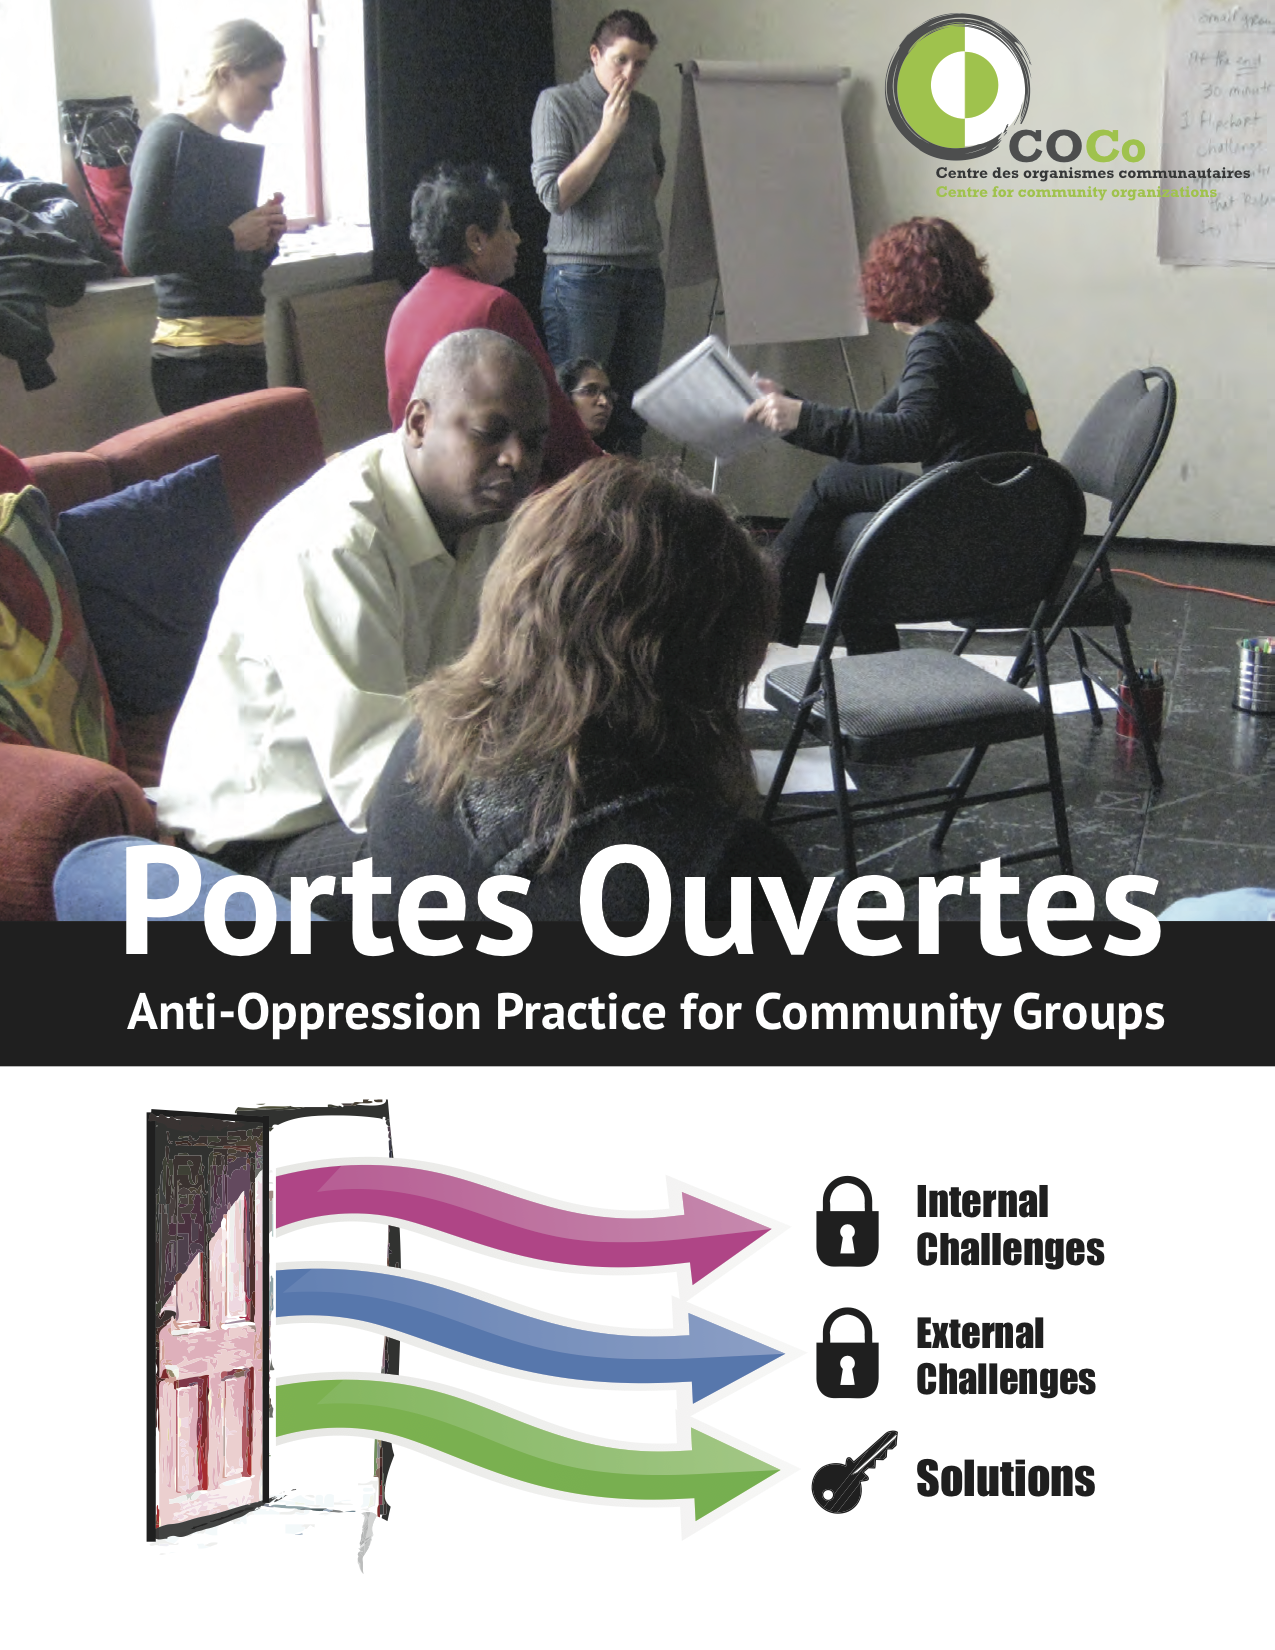 Anti-Oppression Challenges and Solutions for Community Groups